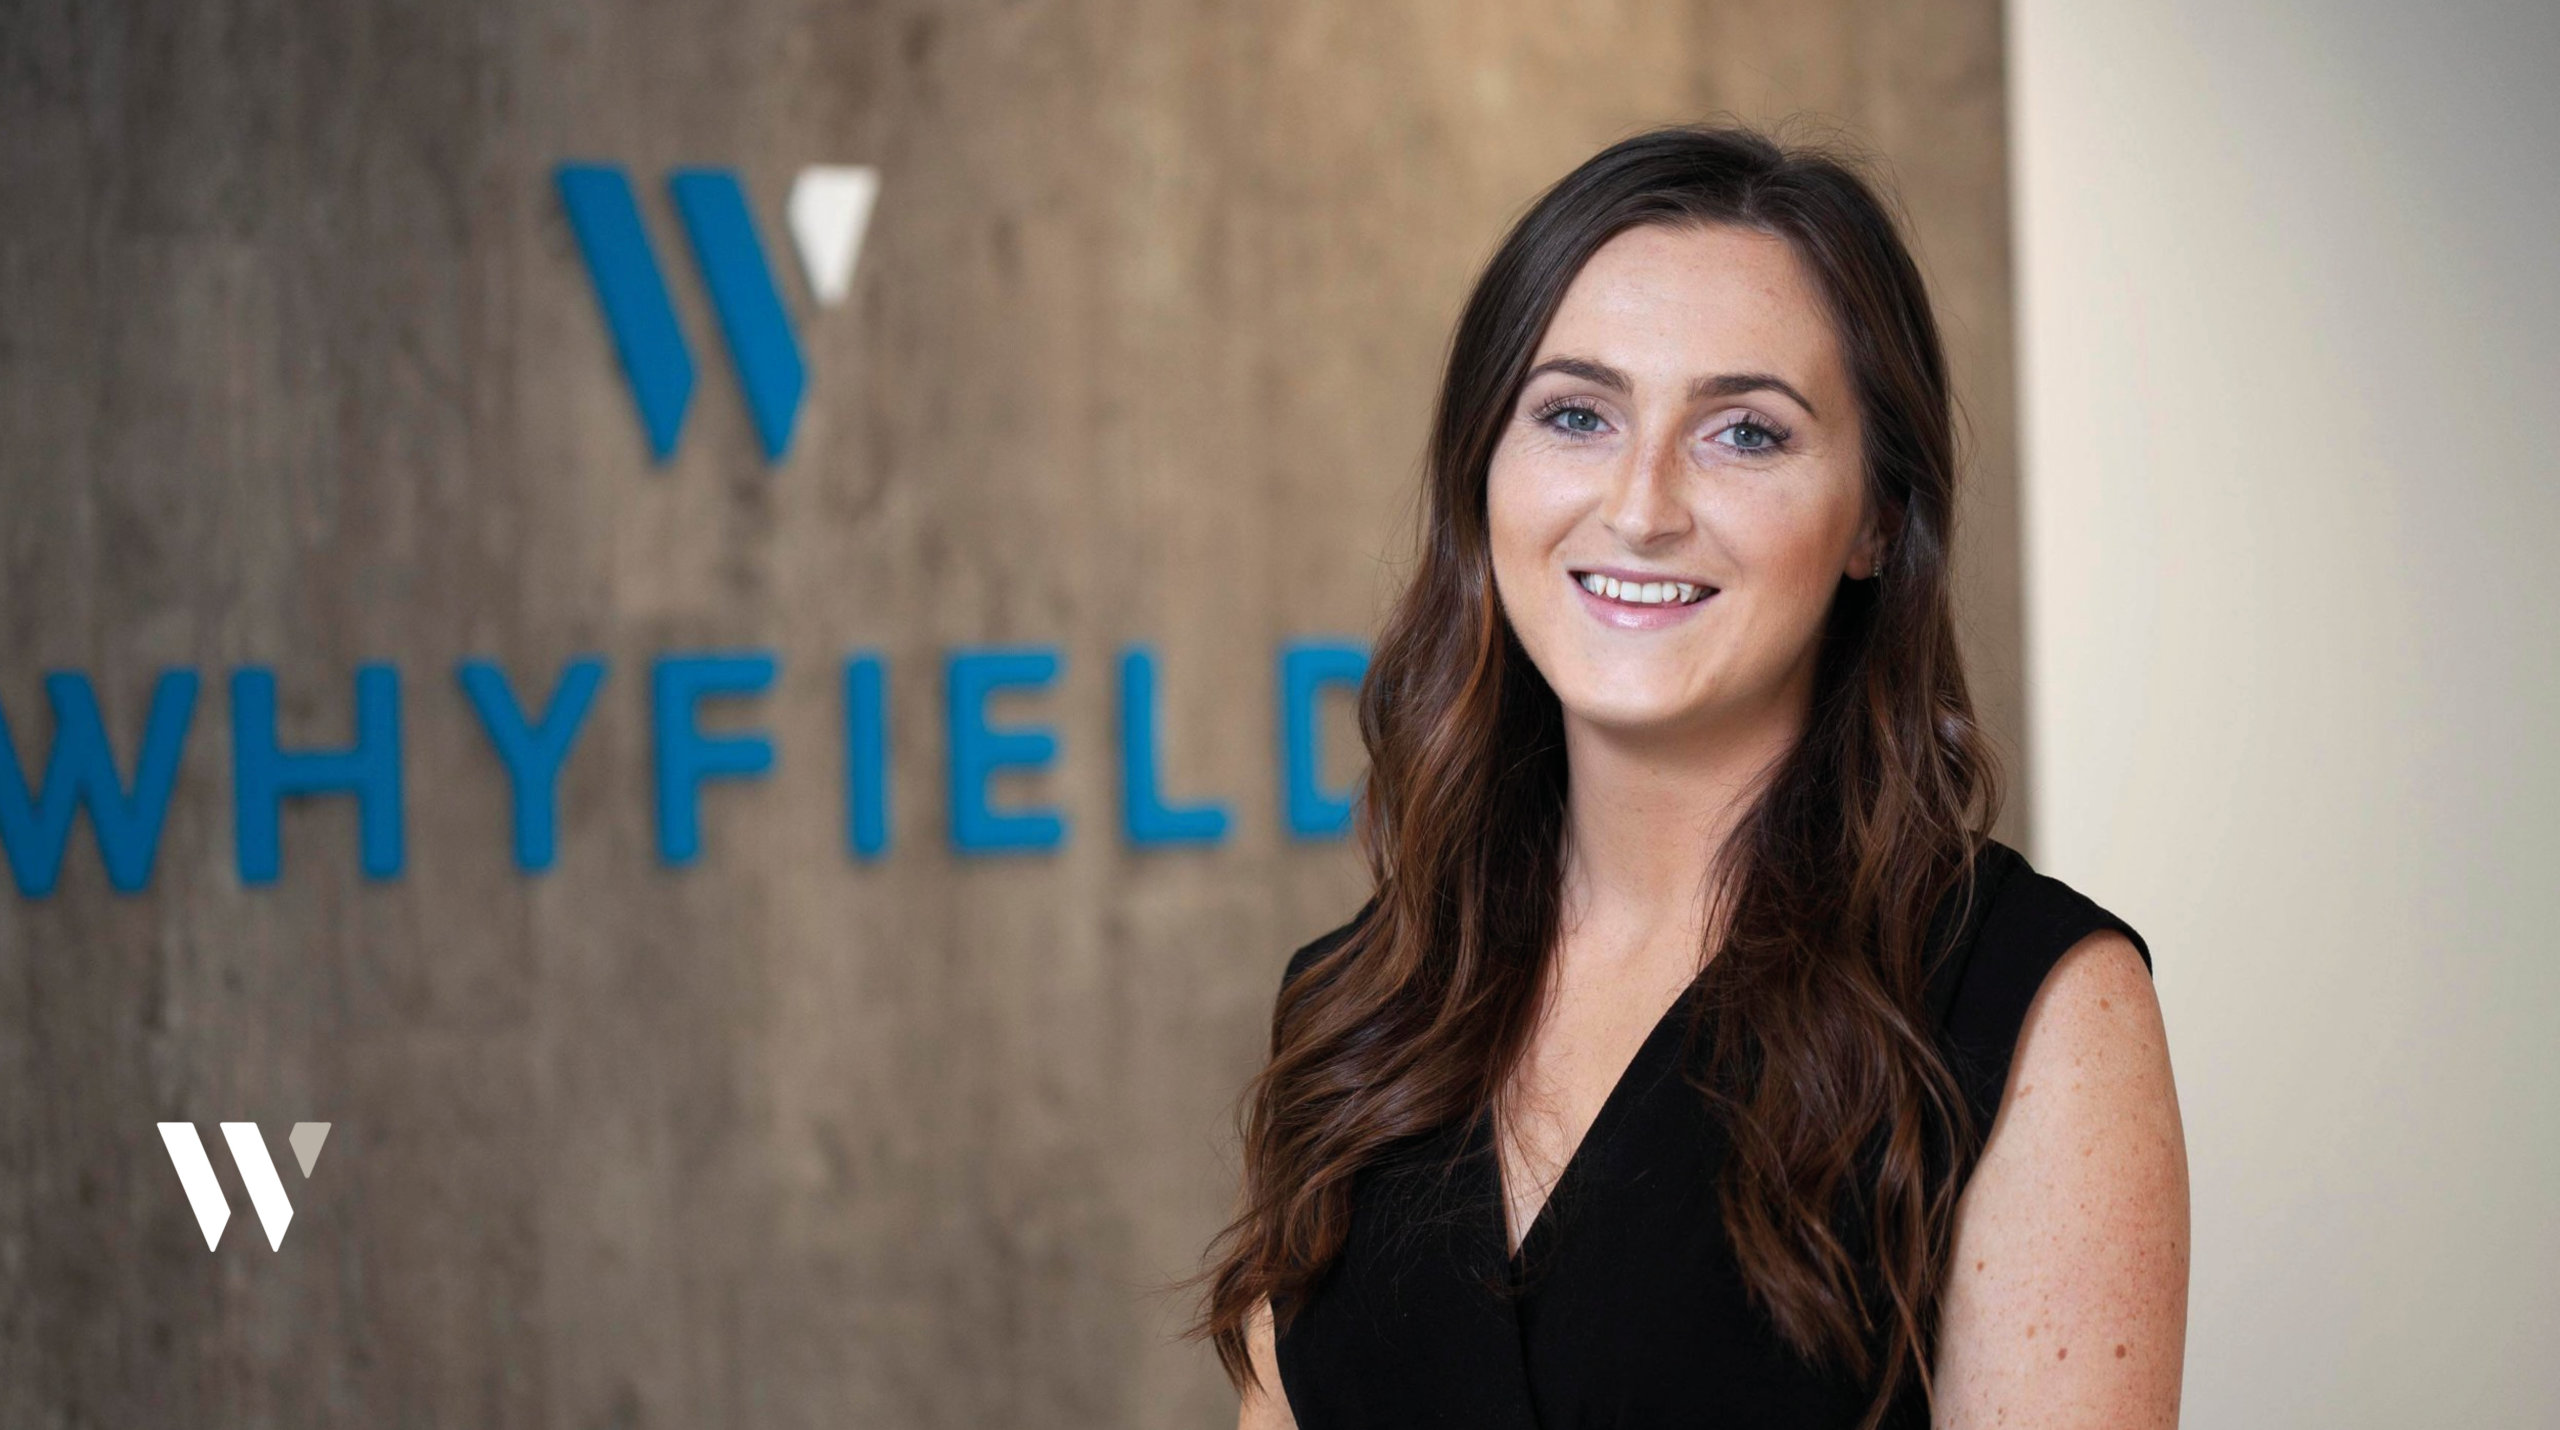 Jess Crook - Whyfield Practice Manager Promotion